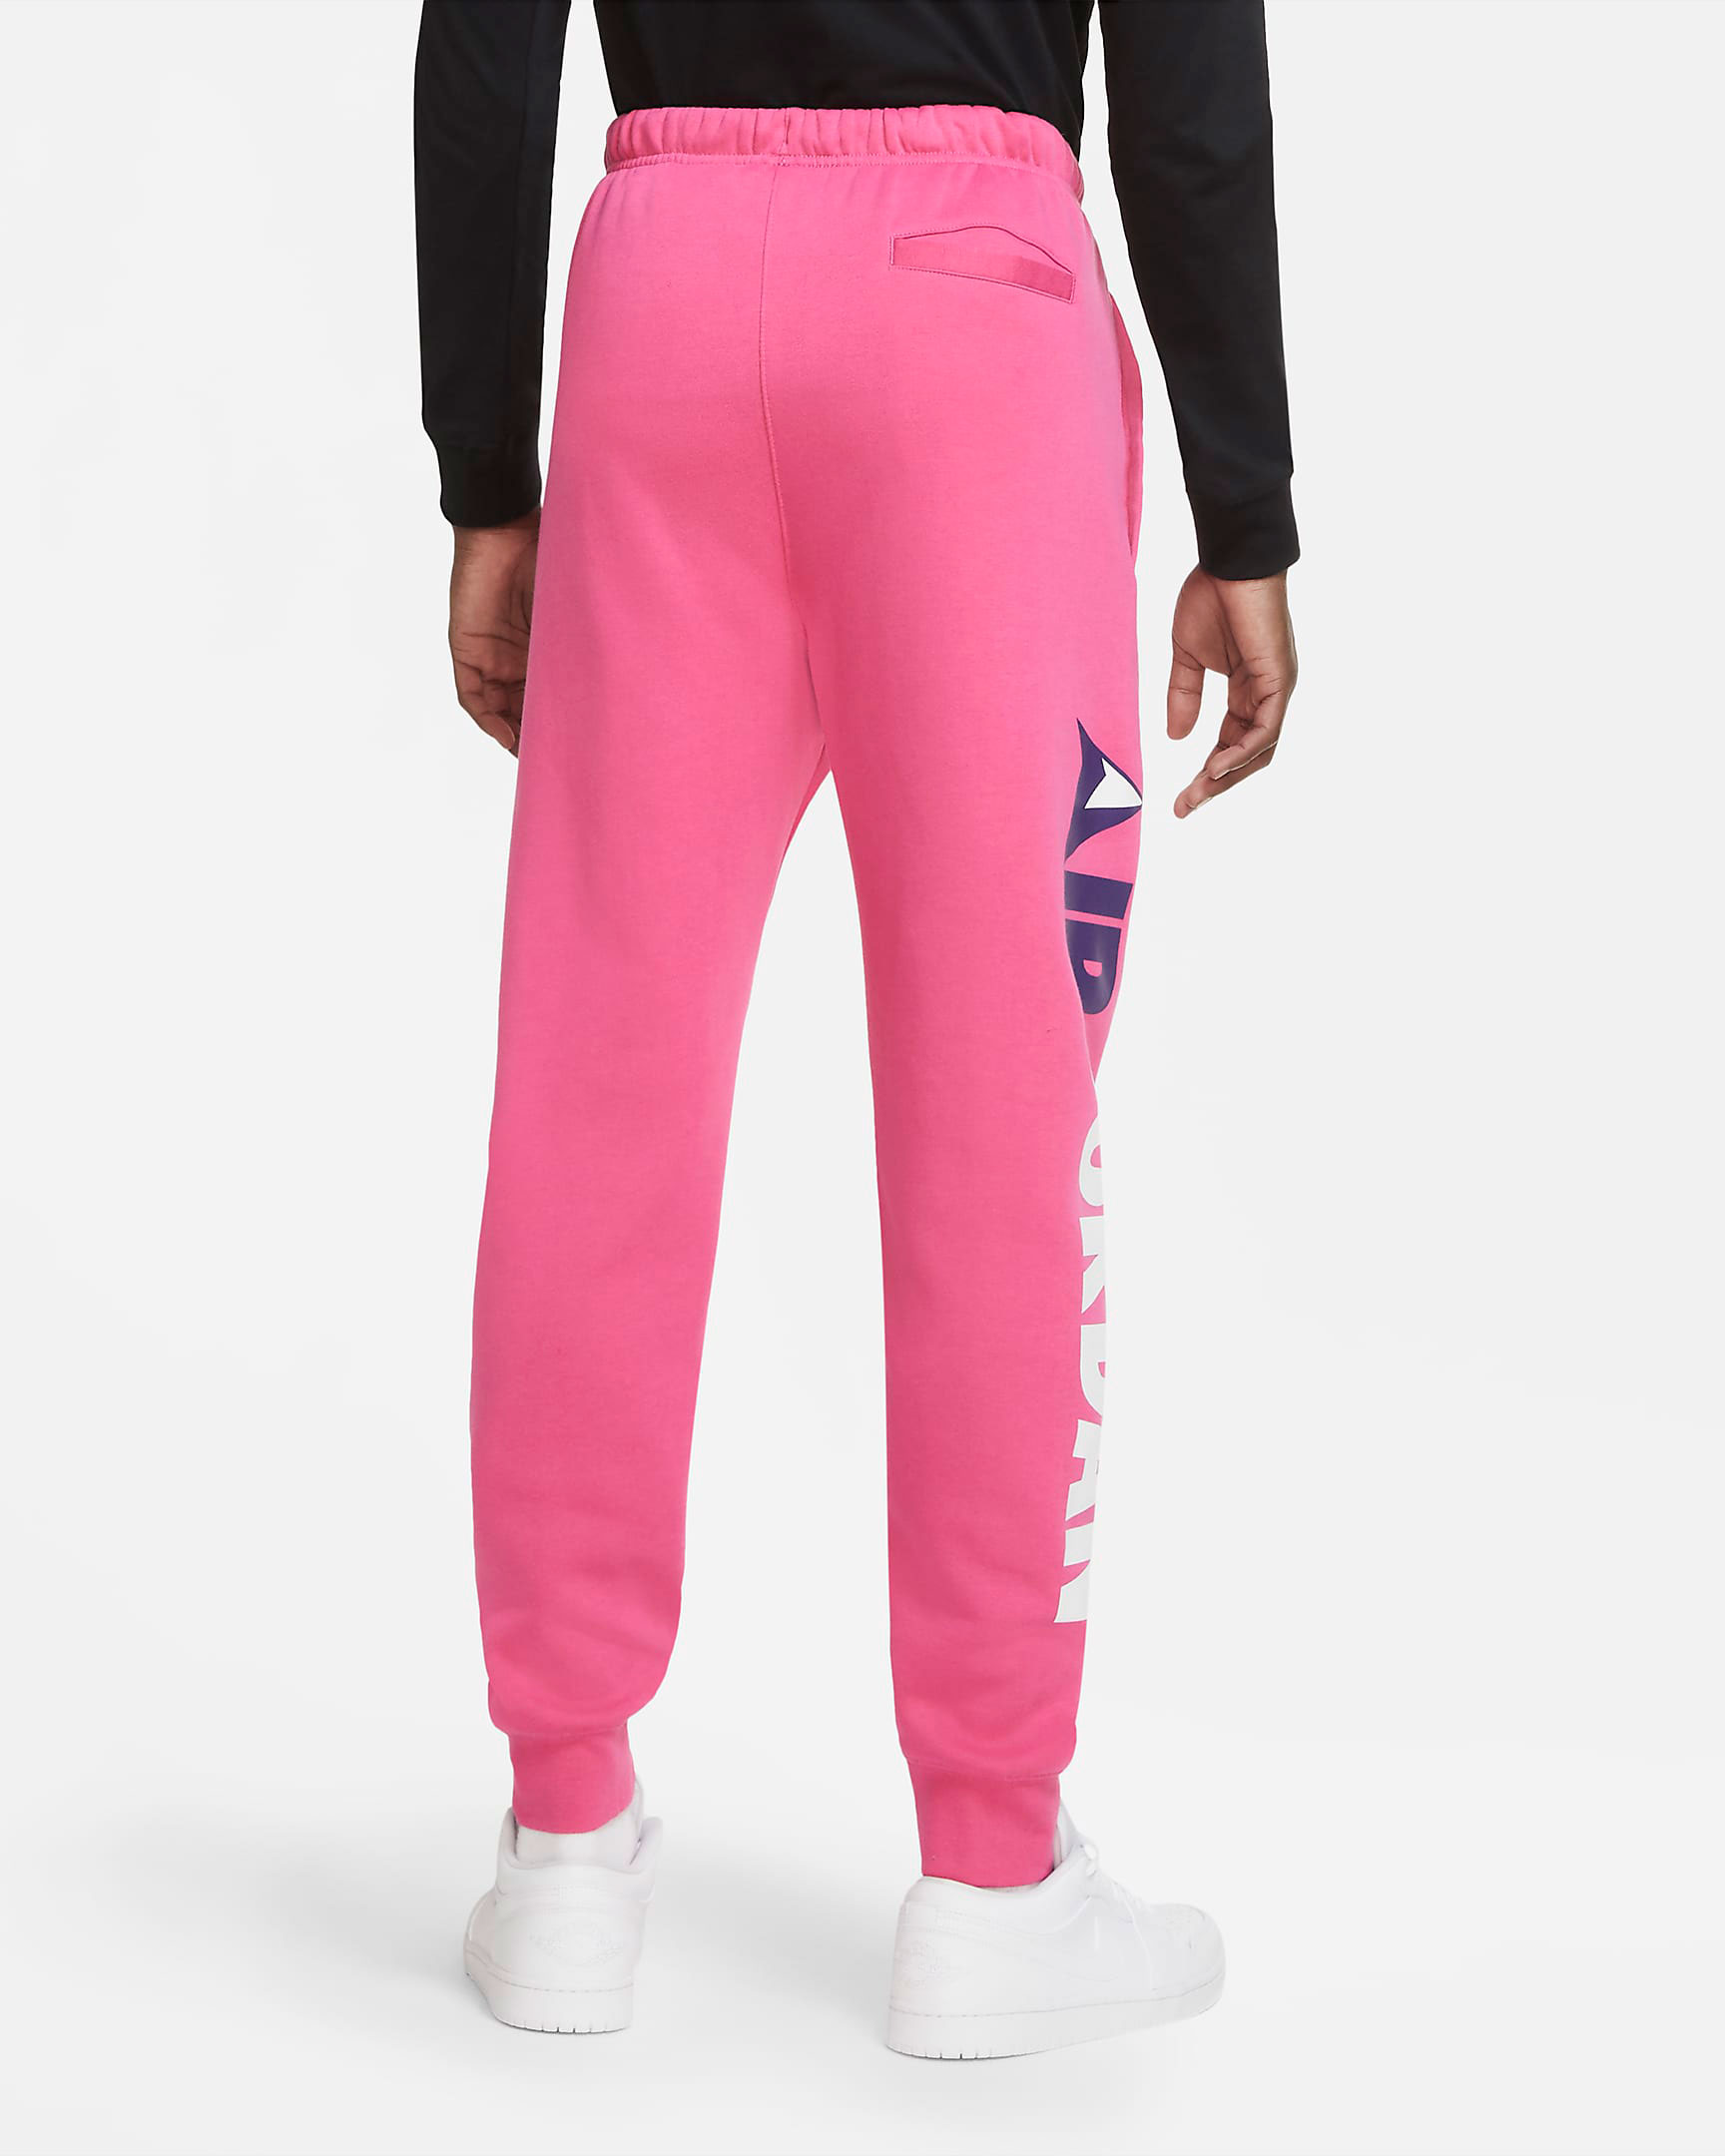 jordan-winter-utility-pants-watermelon-pink-2